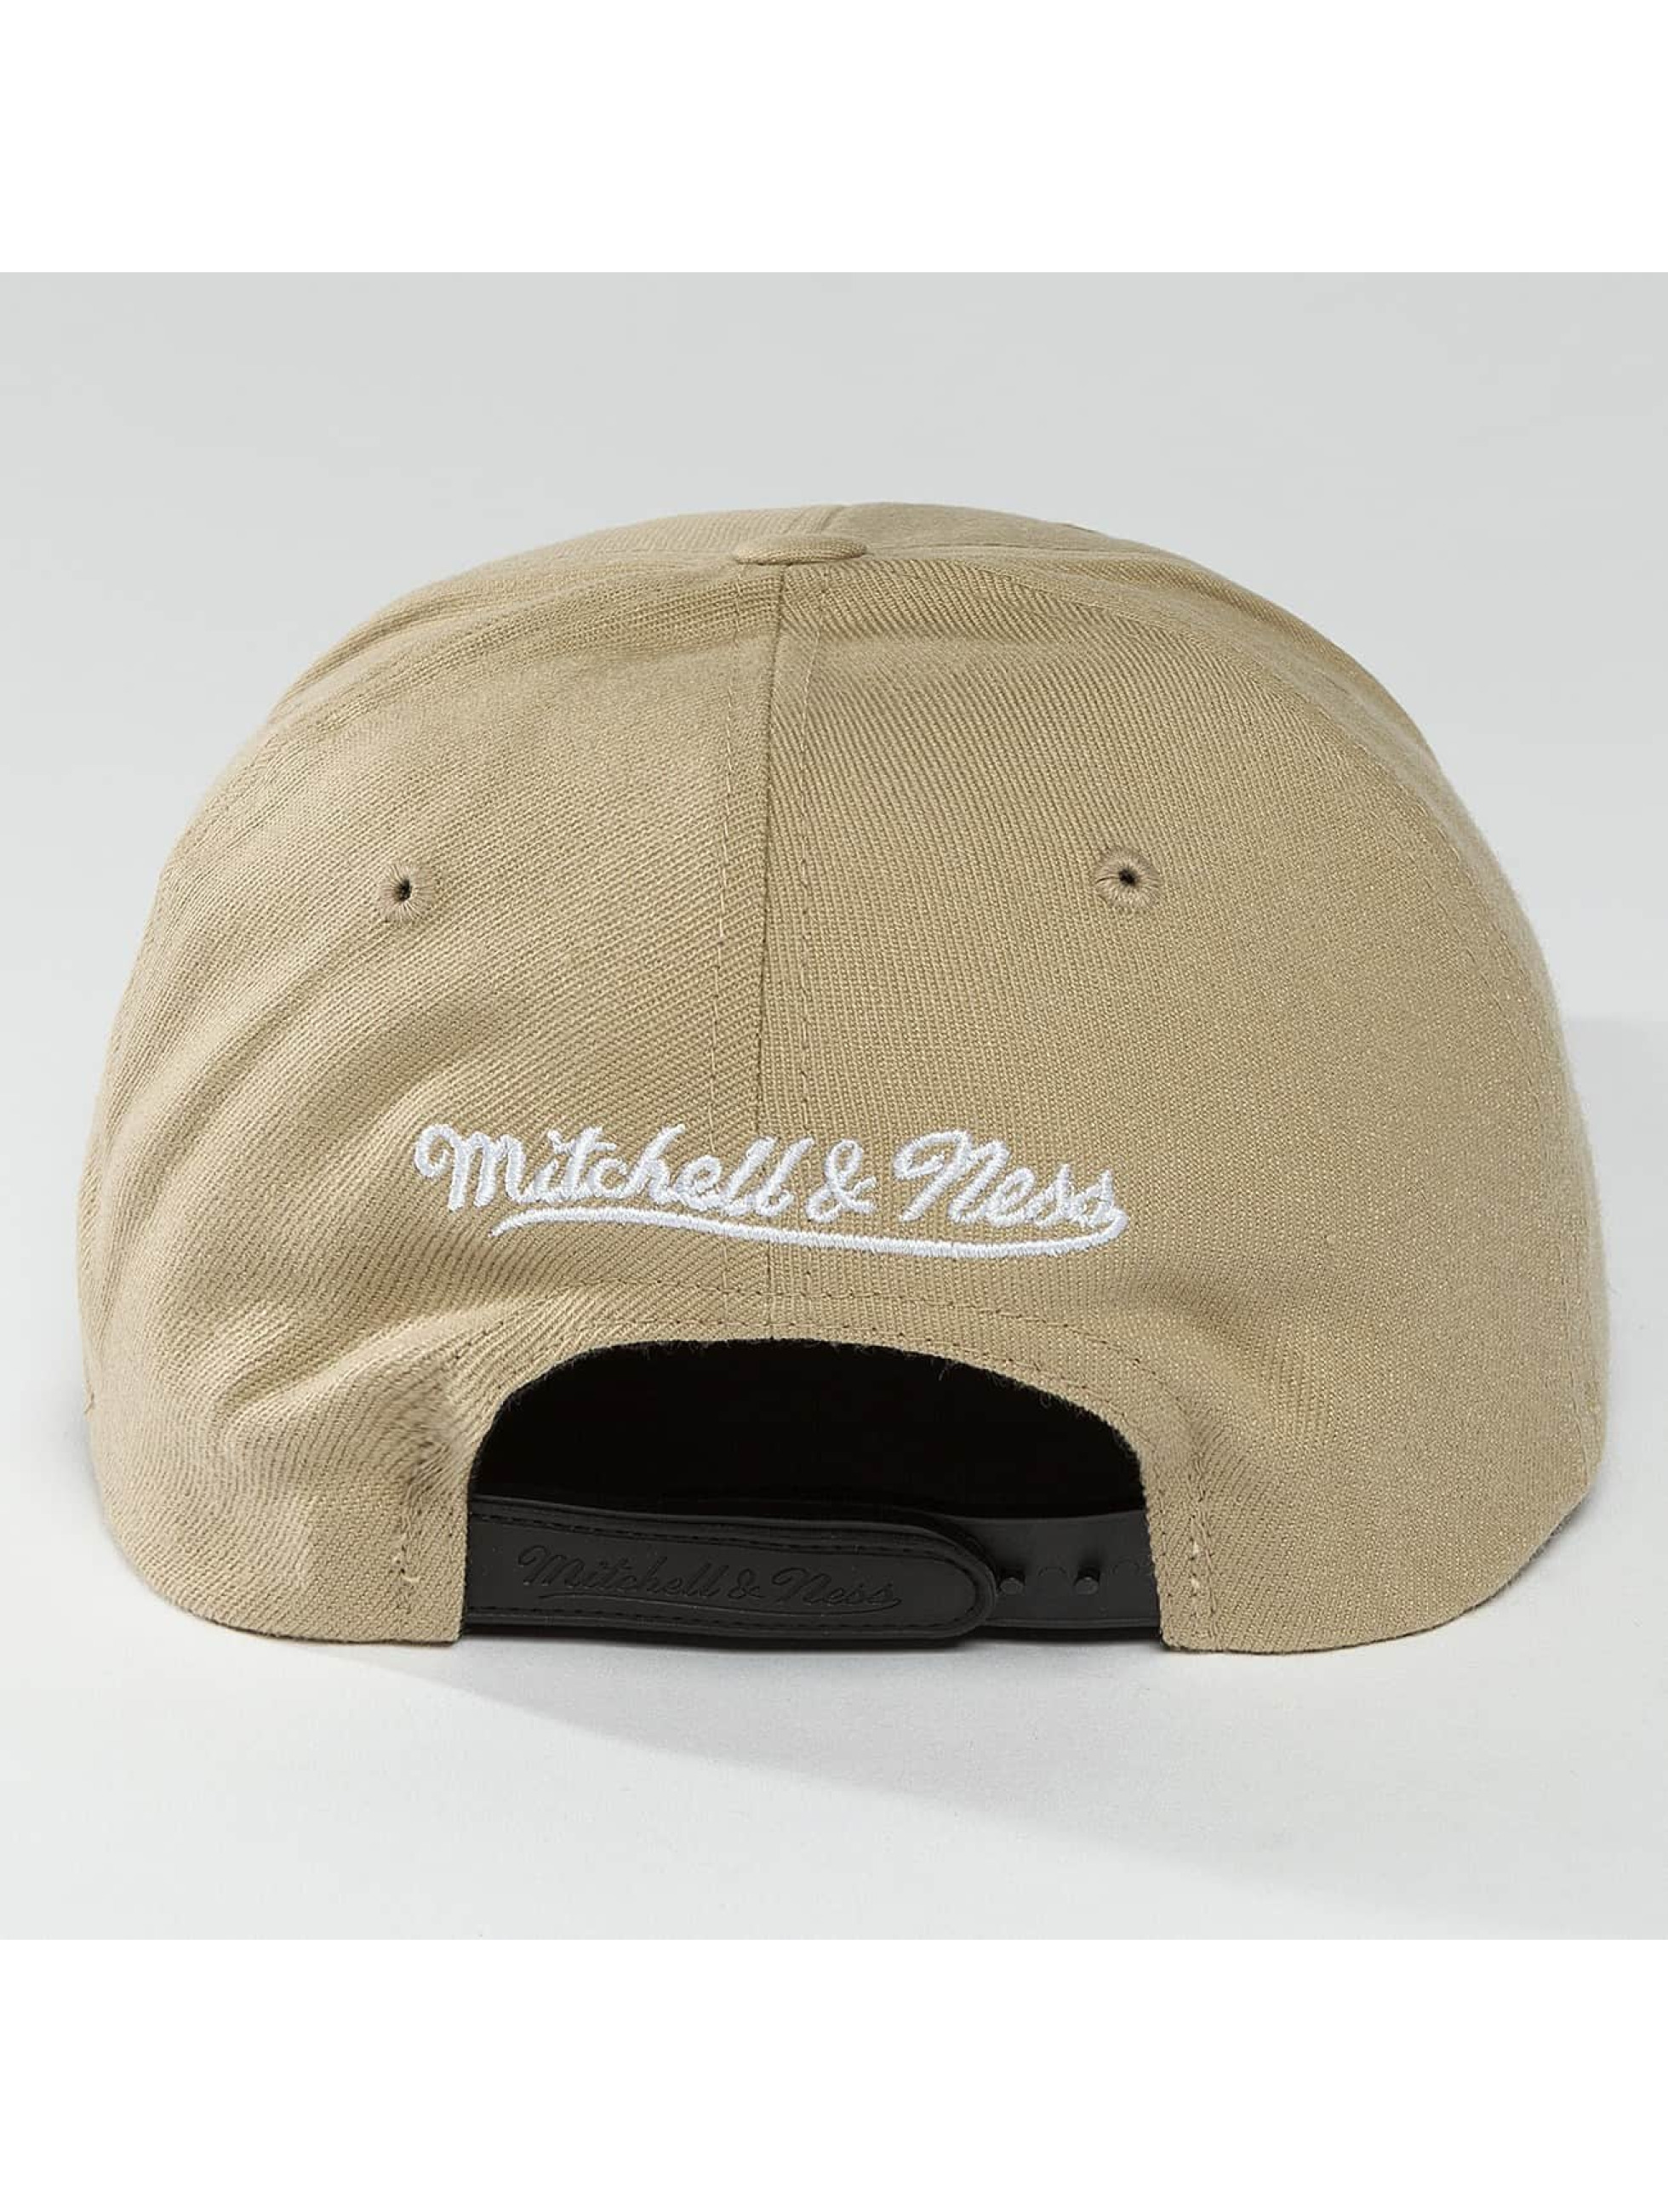 Mitchell & Ness Gorra Snapback 110 The Camo & Suede beis